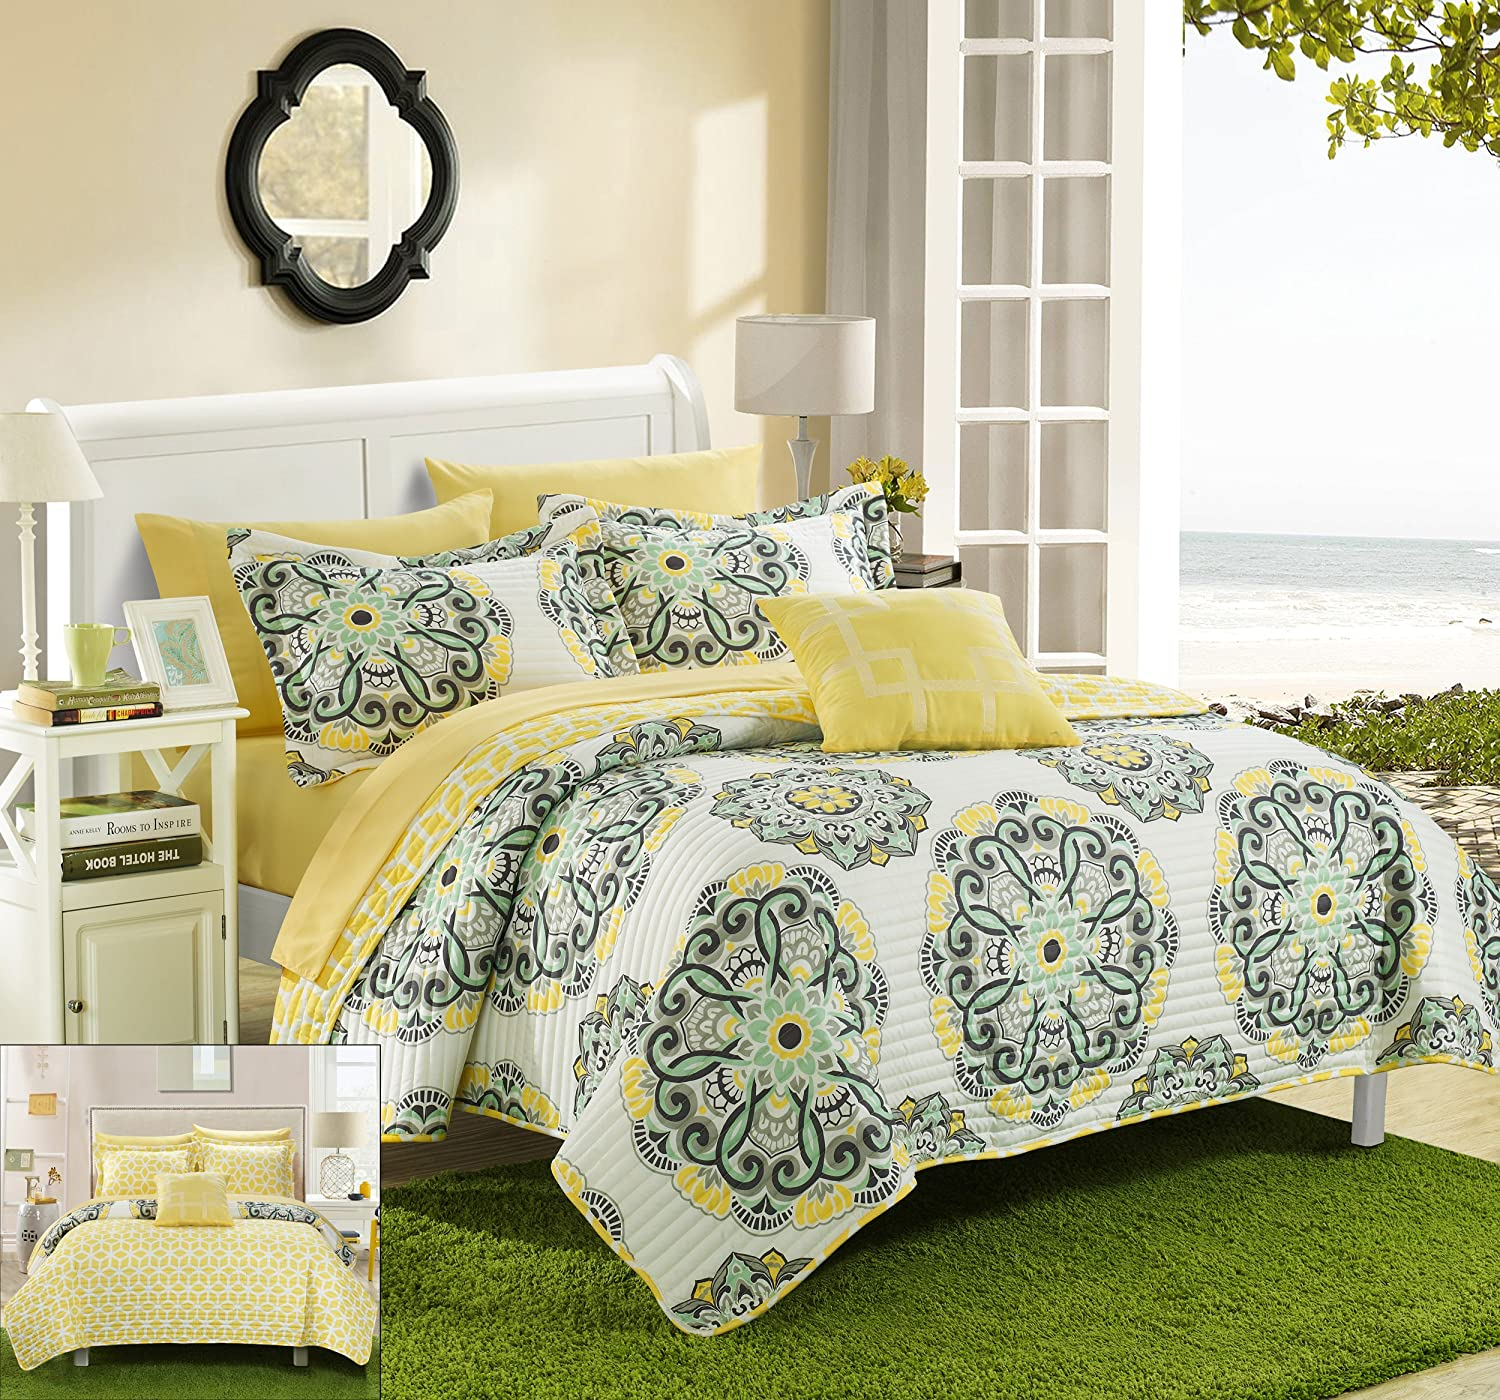 Chic Home 3 Piece Madrid Printed Medallion Reversible Geometric Backing Quilt Set, Twin, Yellow